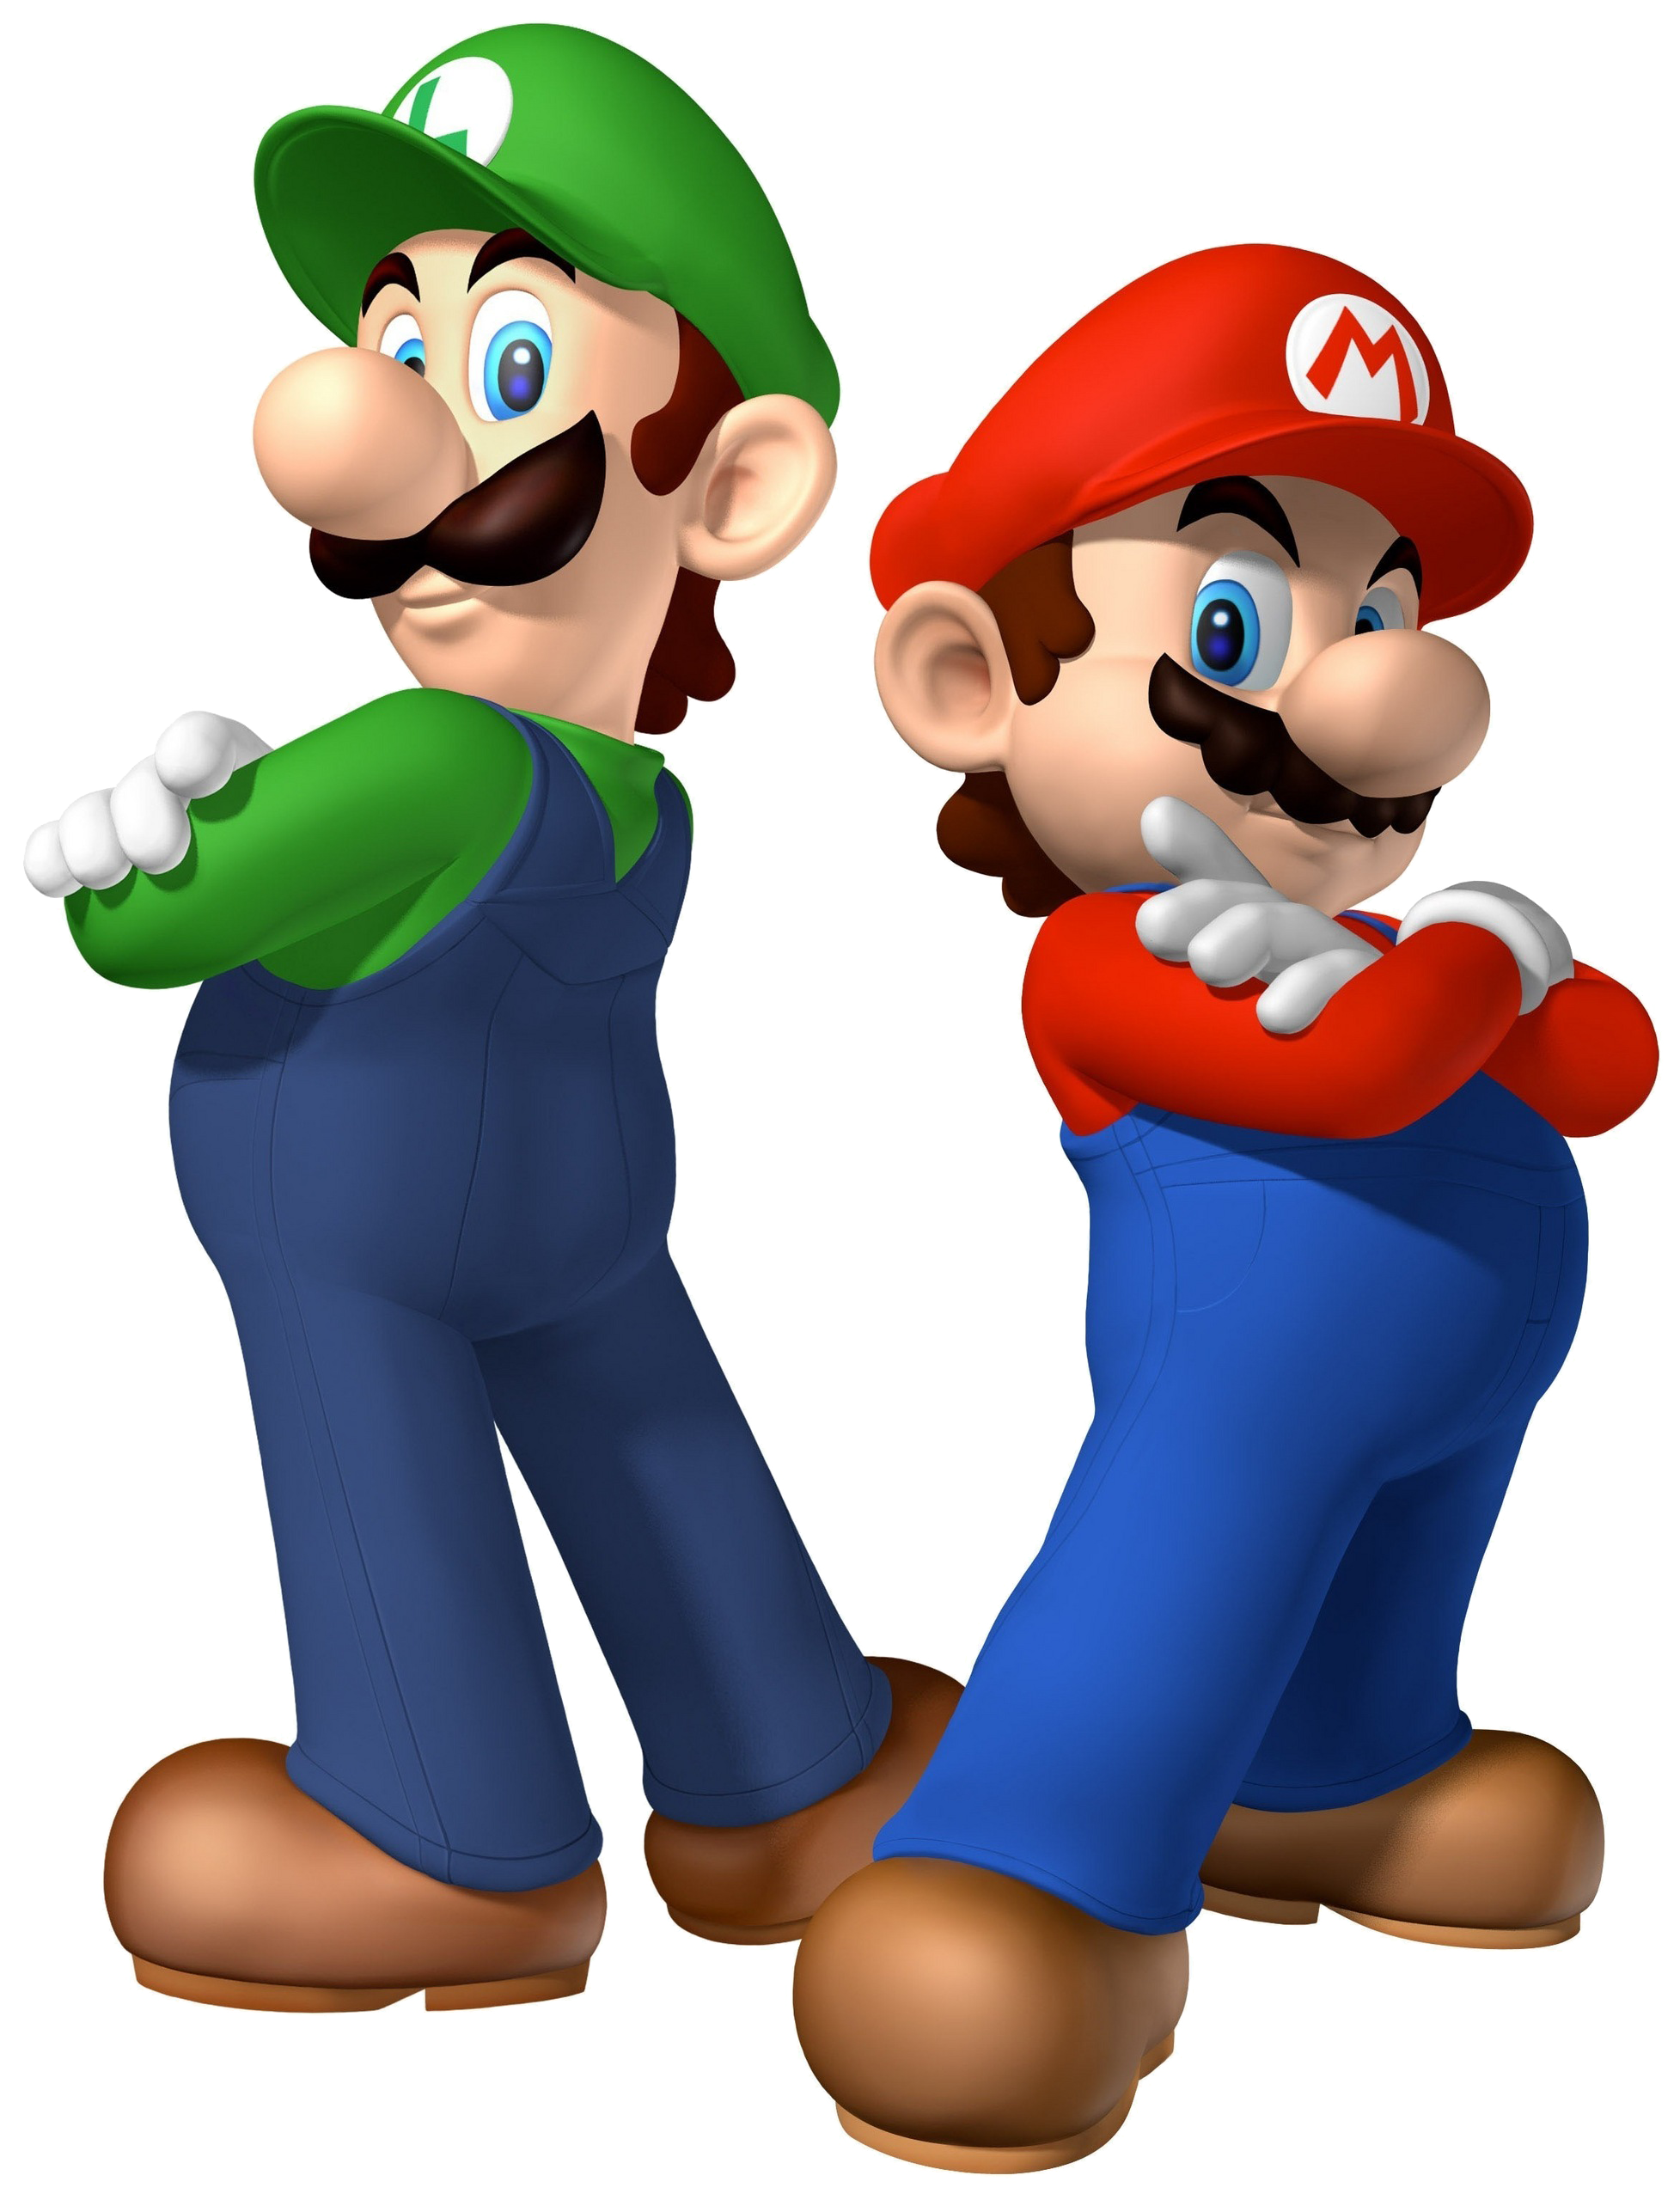 Mario Bros Transparent Background - Mario Bros PNG